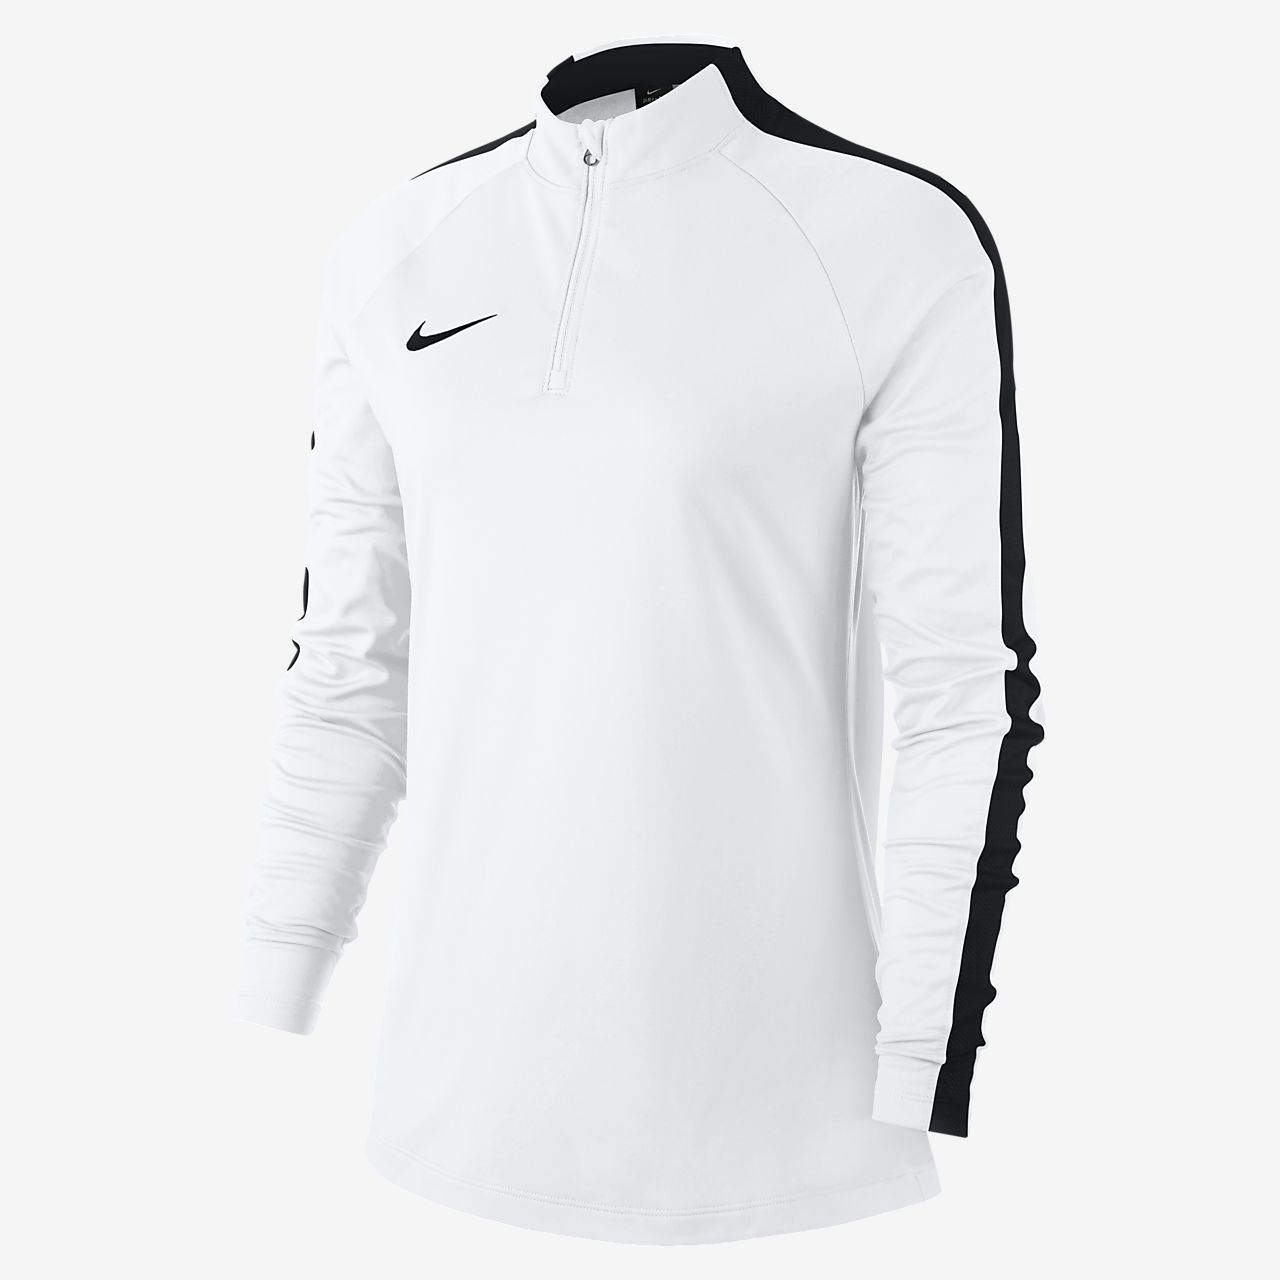 Dri Sleeve Nike Drill Fit Academy Football Long Top Women's b7yfgvY6